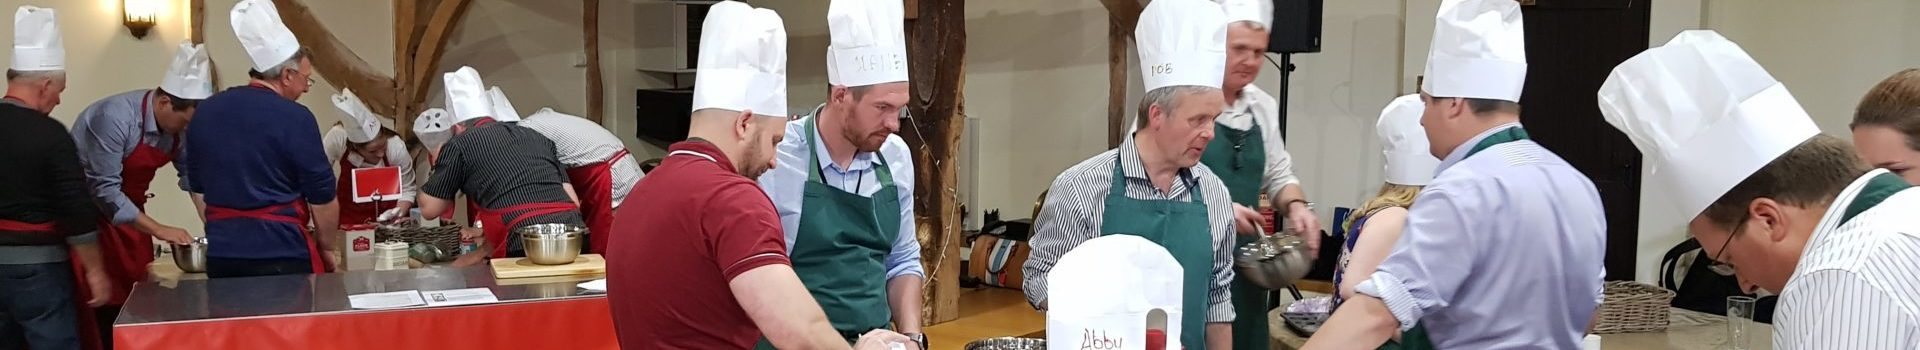 A group of people wearing paper chefs hats and taking part in a cookery team building activity